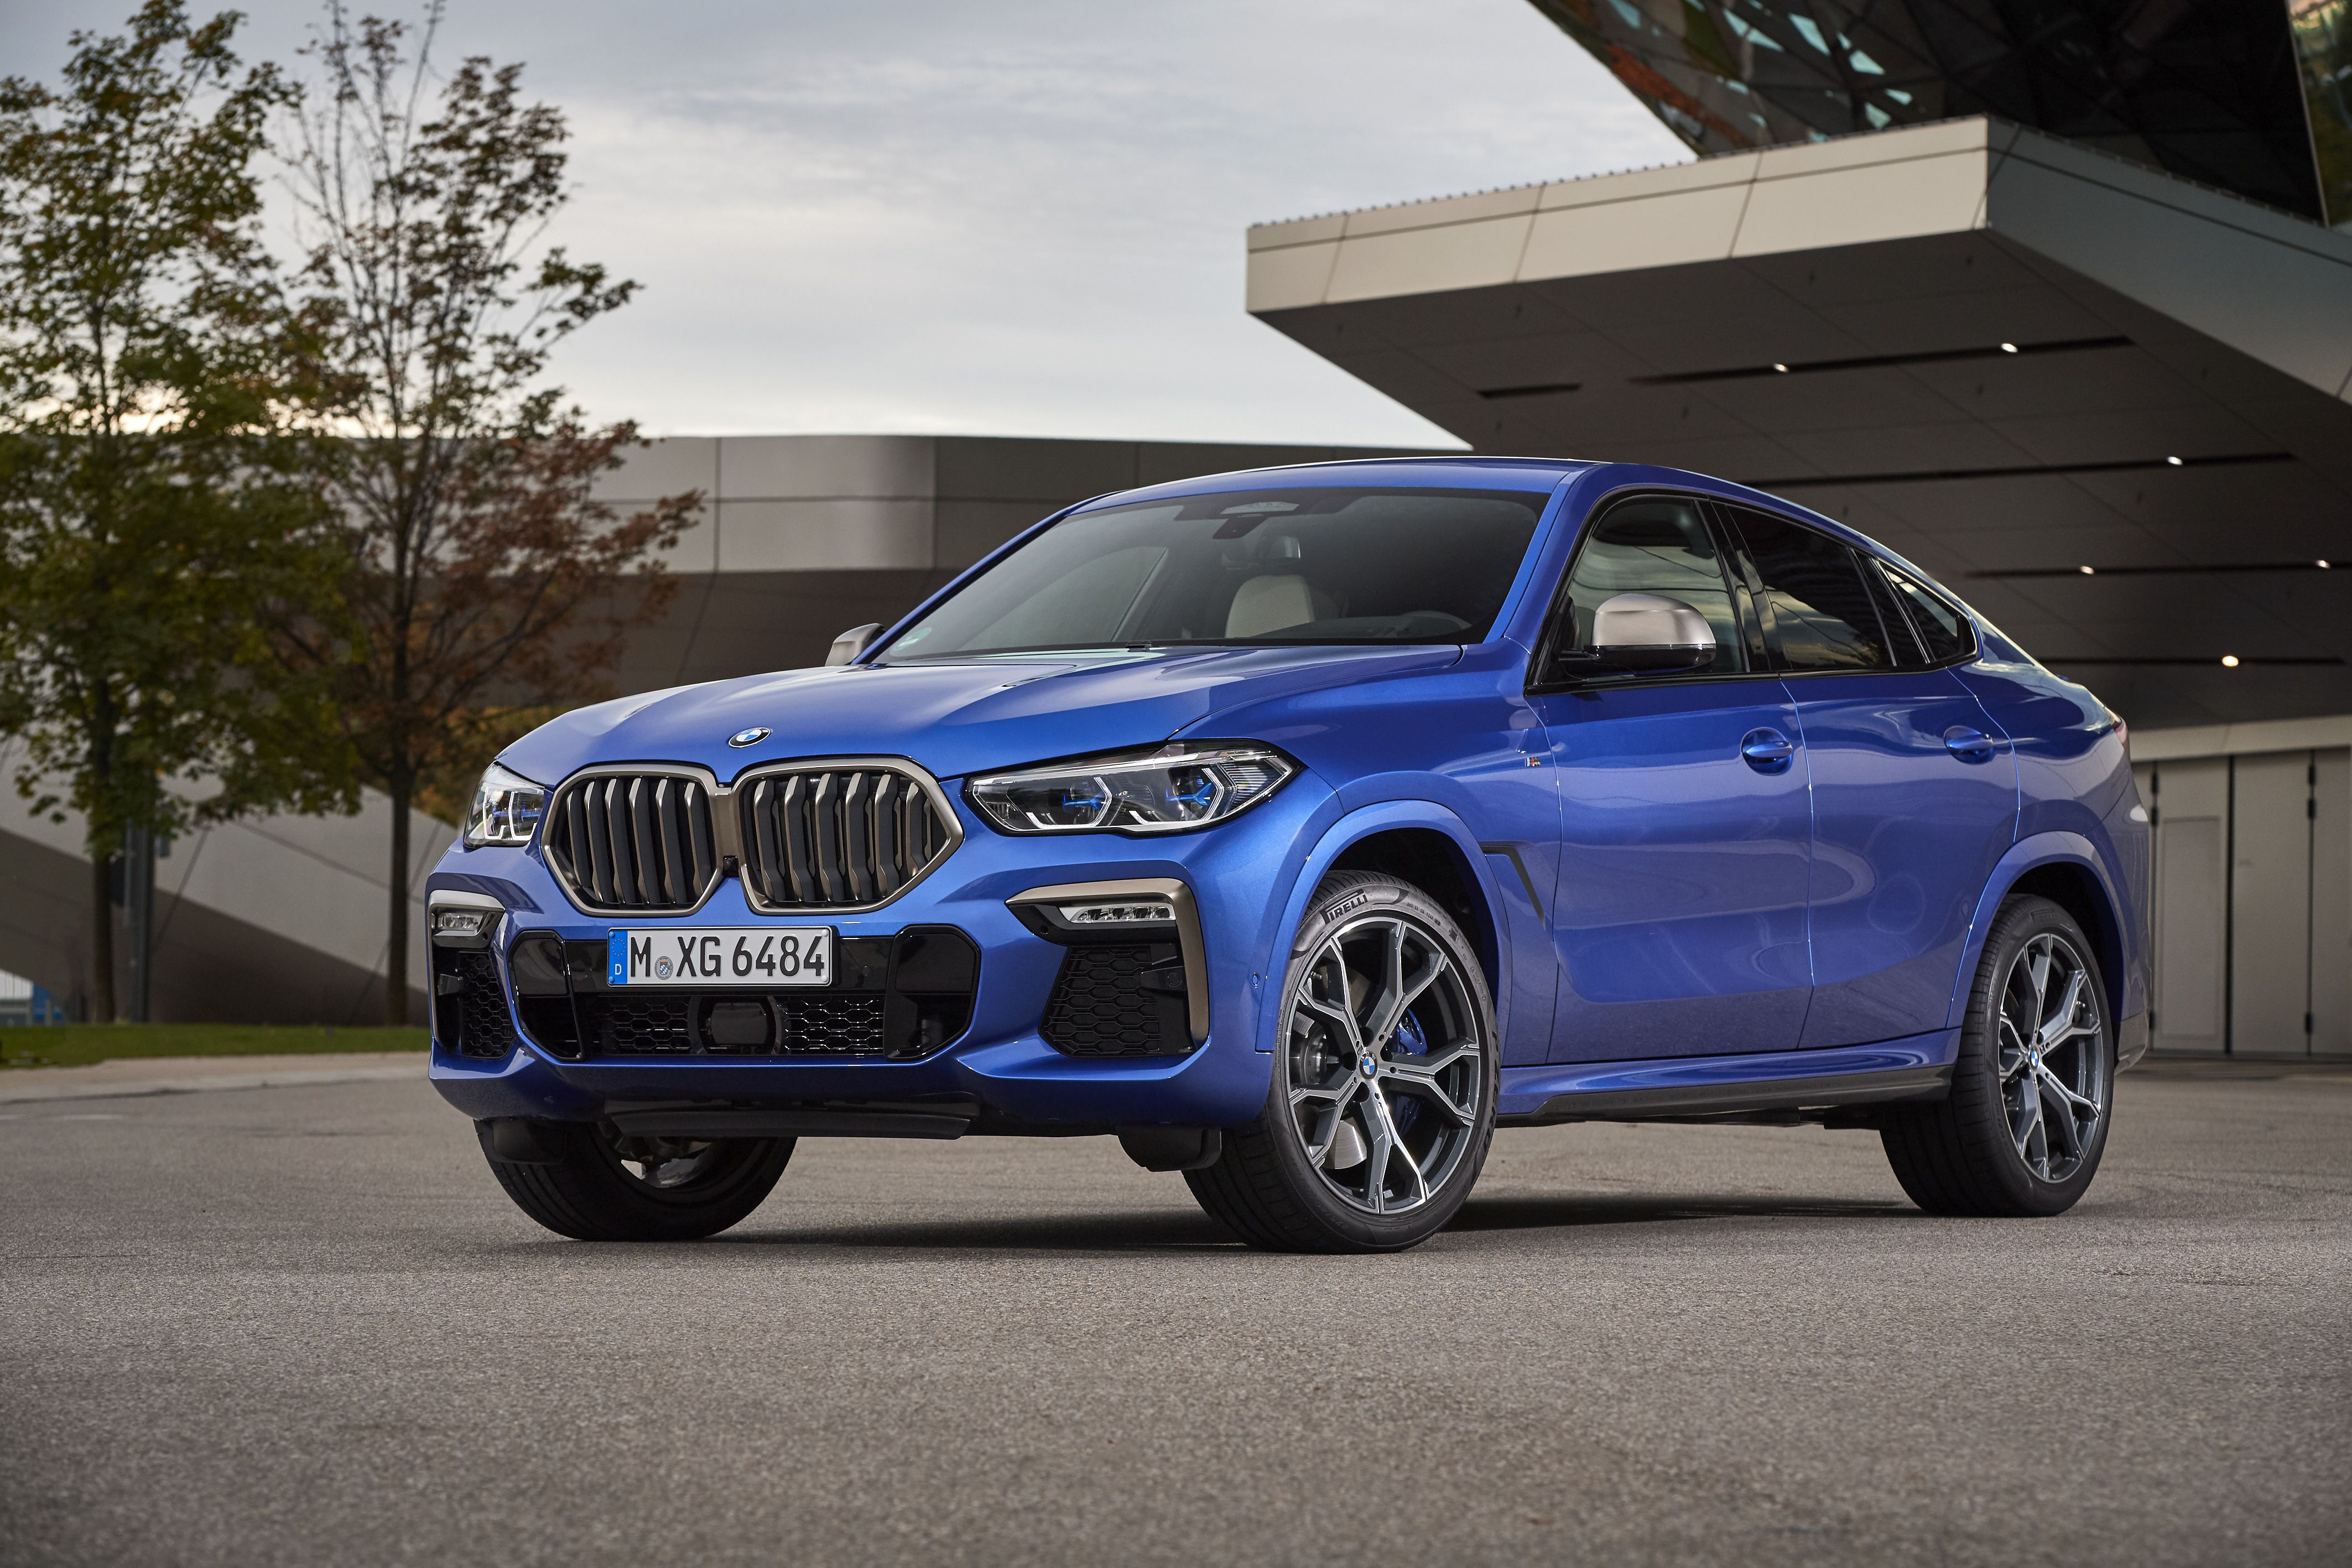 2021 Bmw X6 Review Pricing And Specs